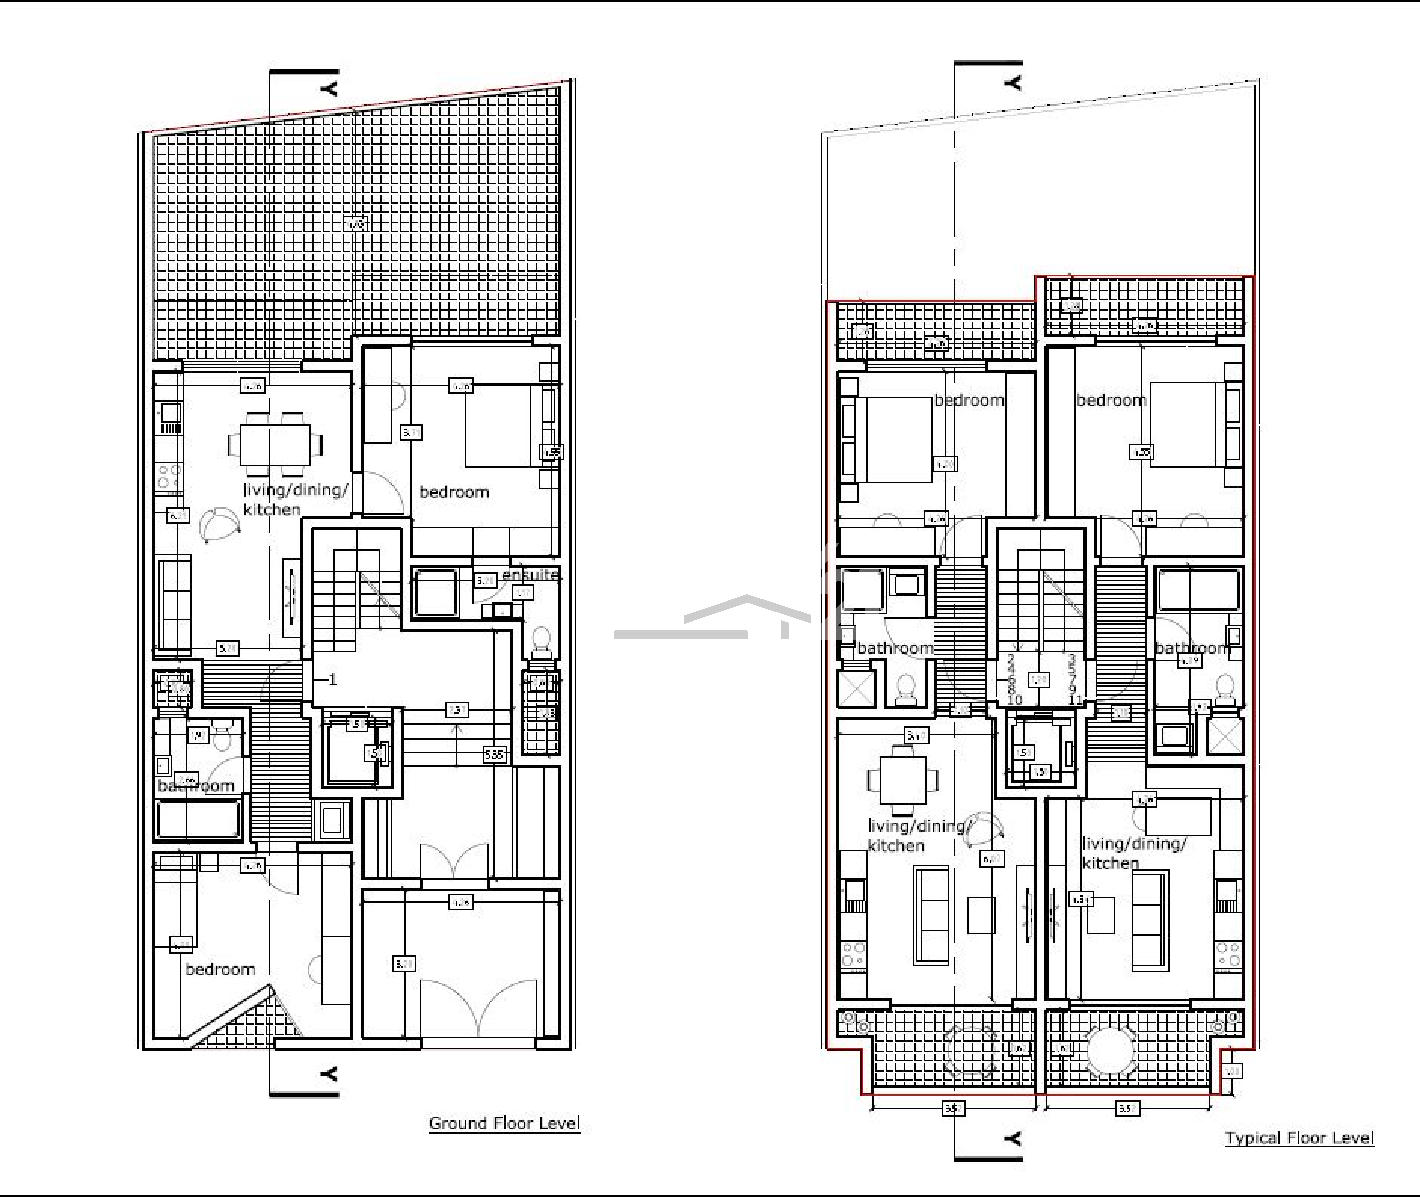 013CF10111–Finished Apartment